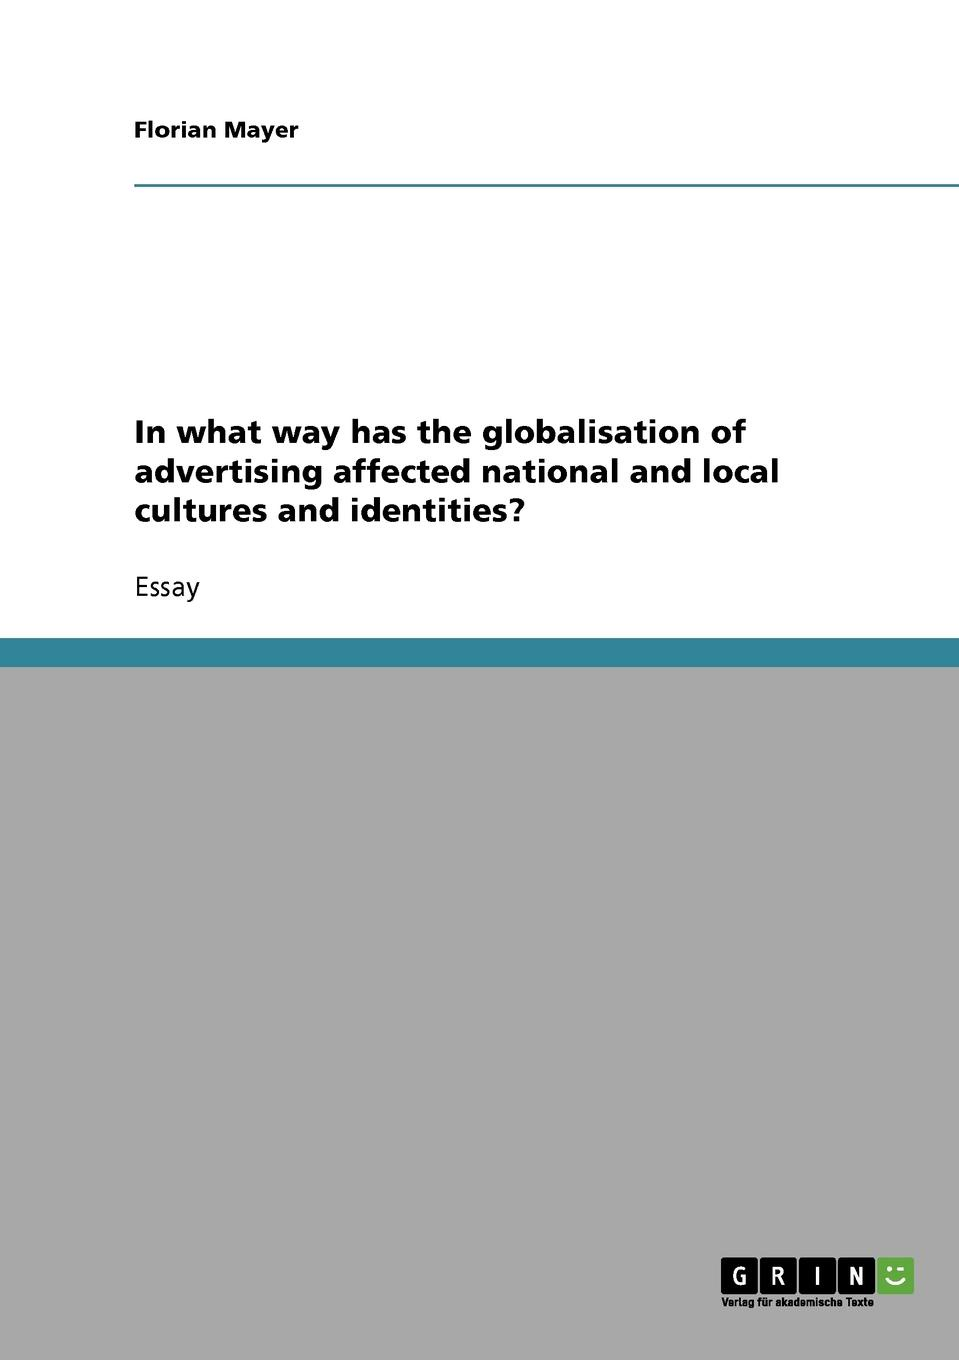 Фото - Florian Mayer In what way has the globalisation of advertising affected national and local cultures and identities. advertising and satirical culture in the romantic period